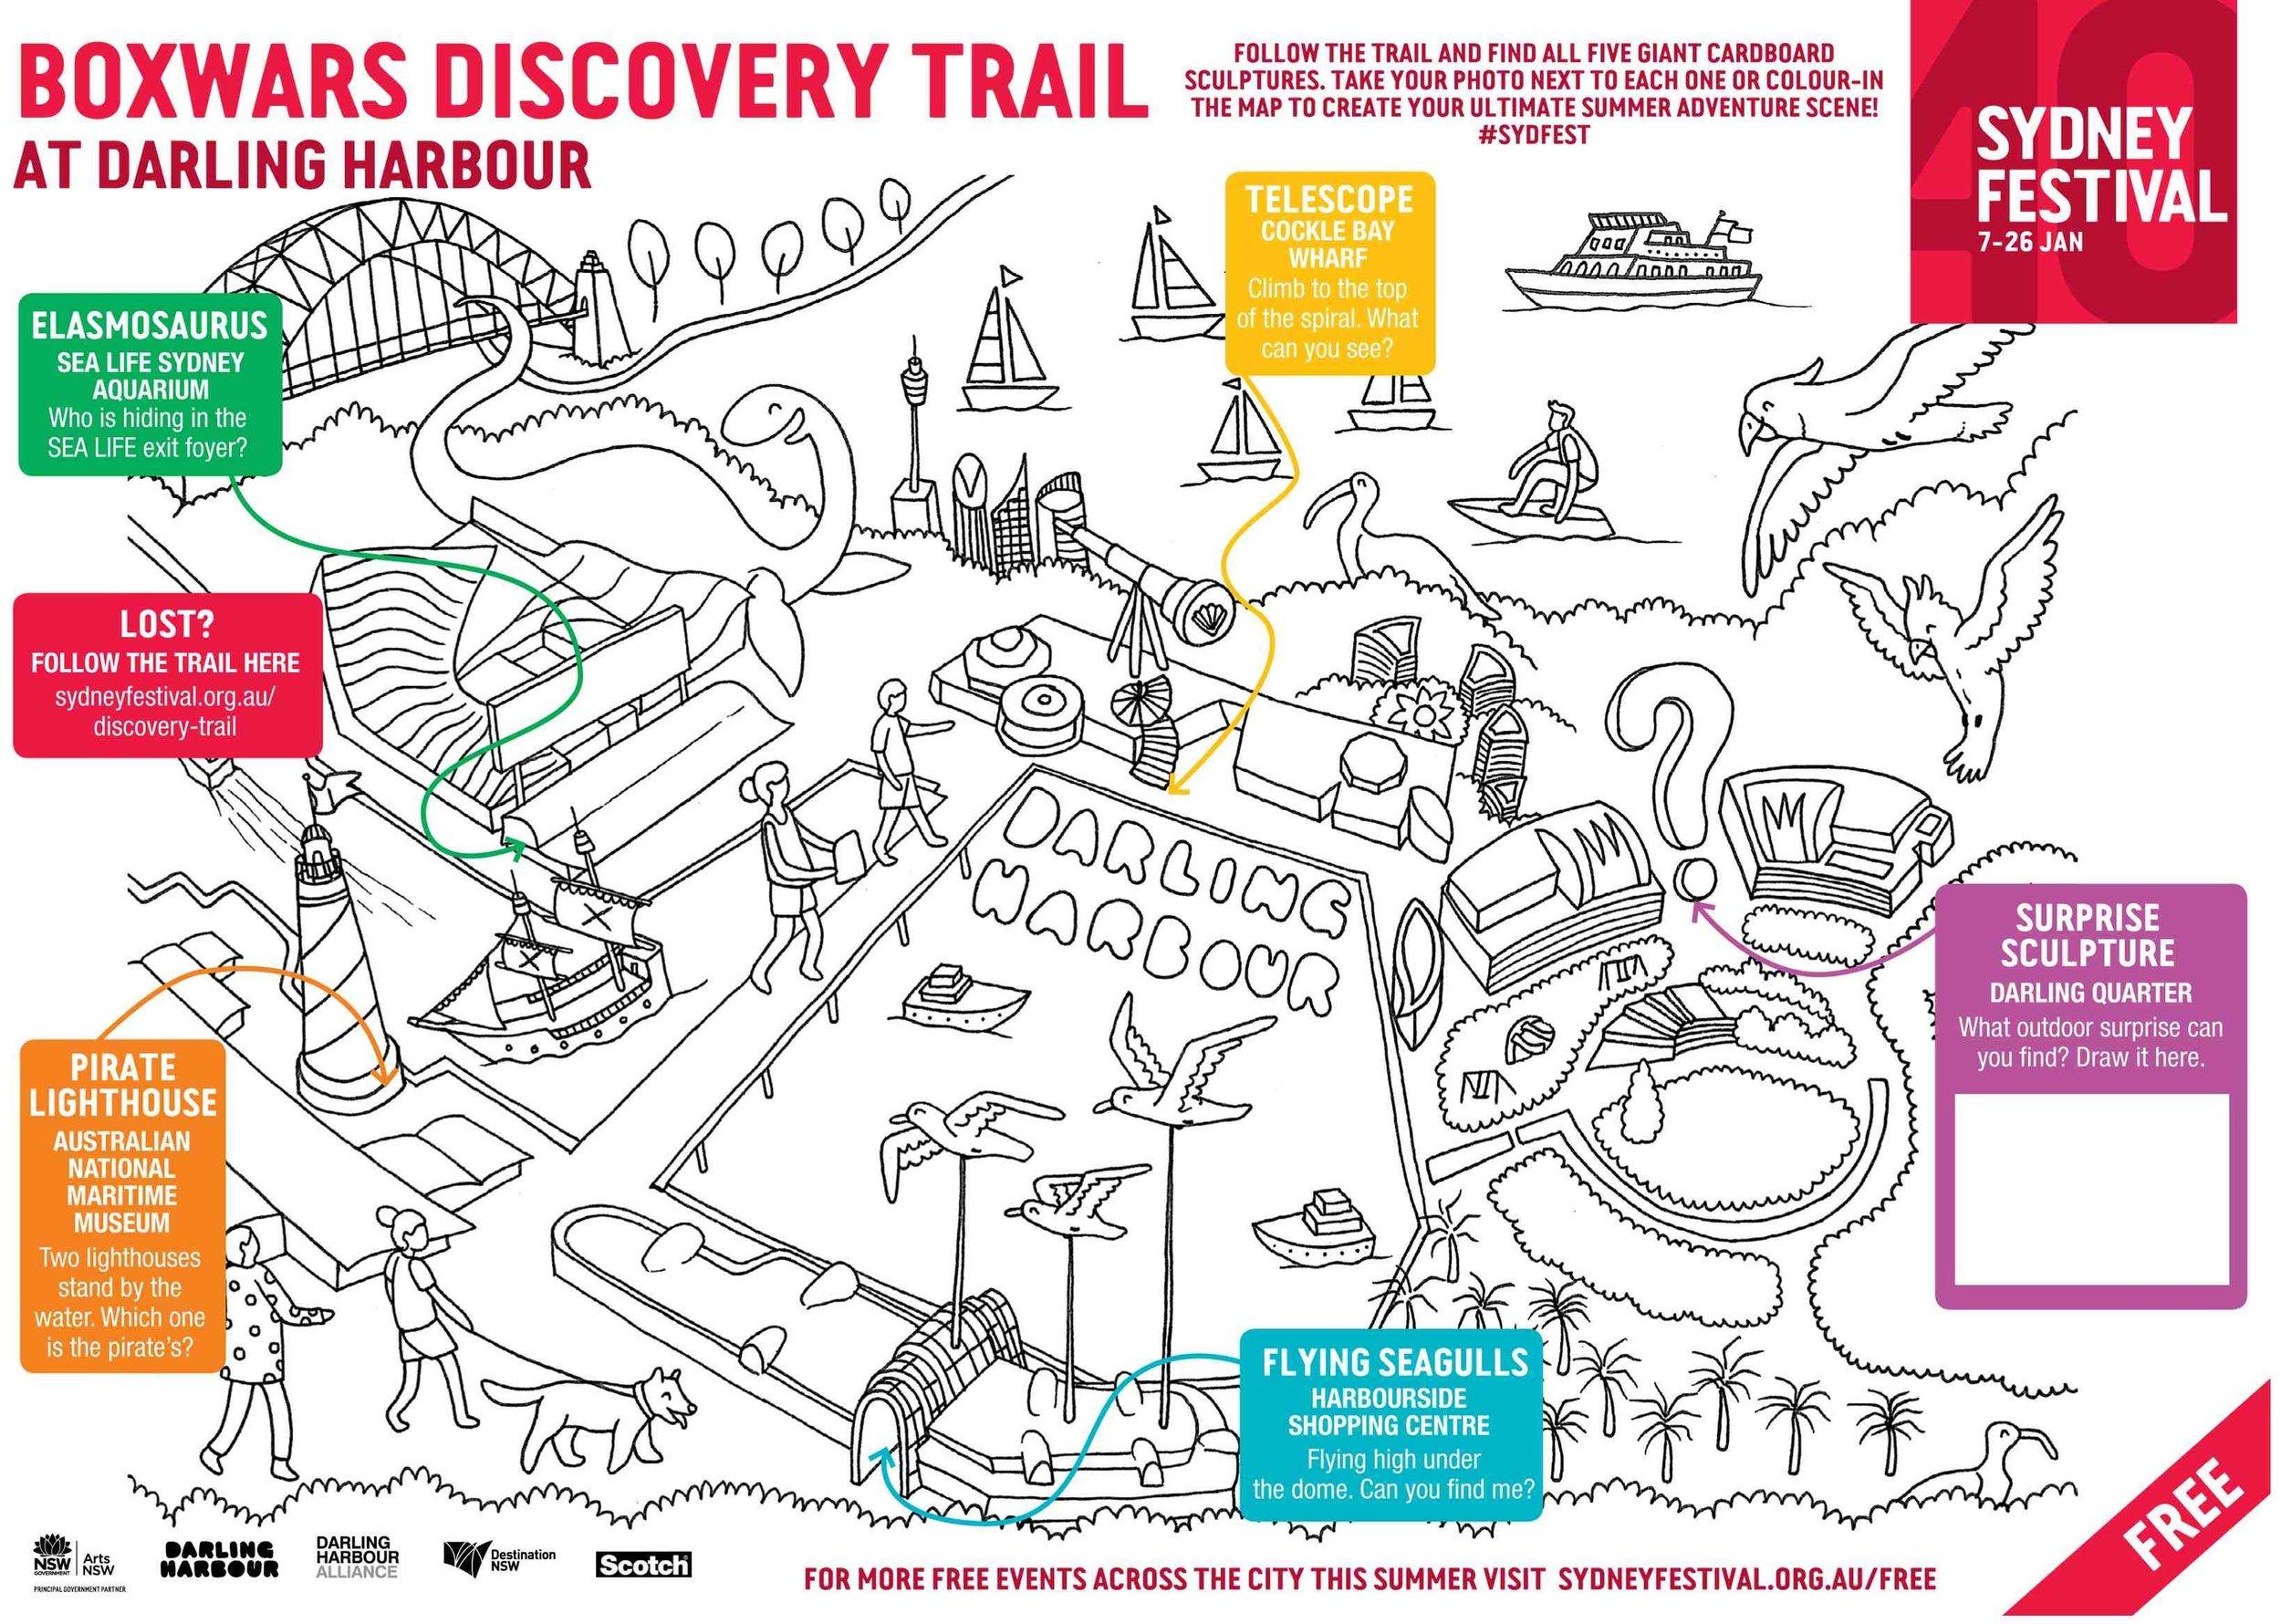 boxwars, darling harbour discovery trail map design